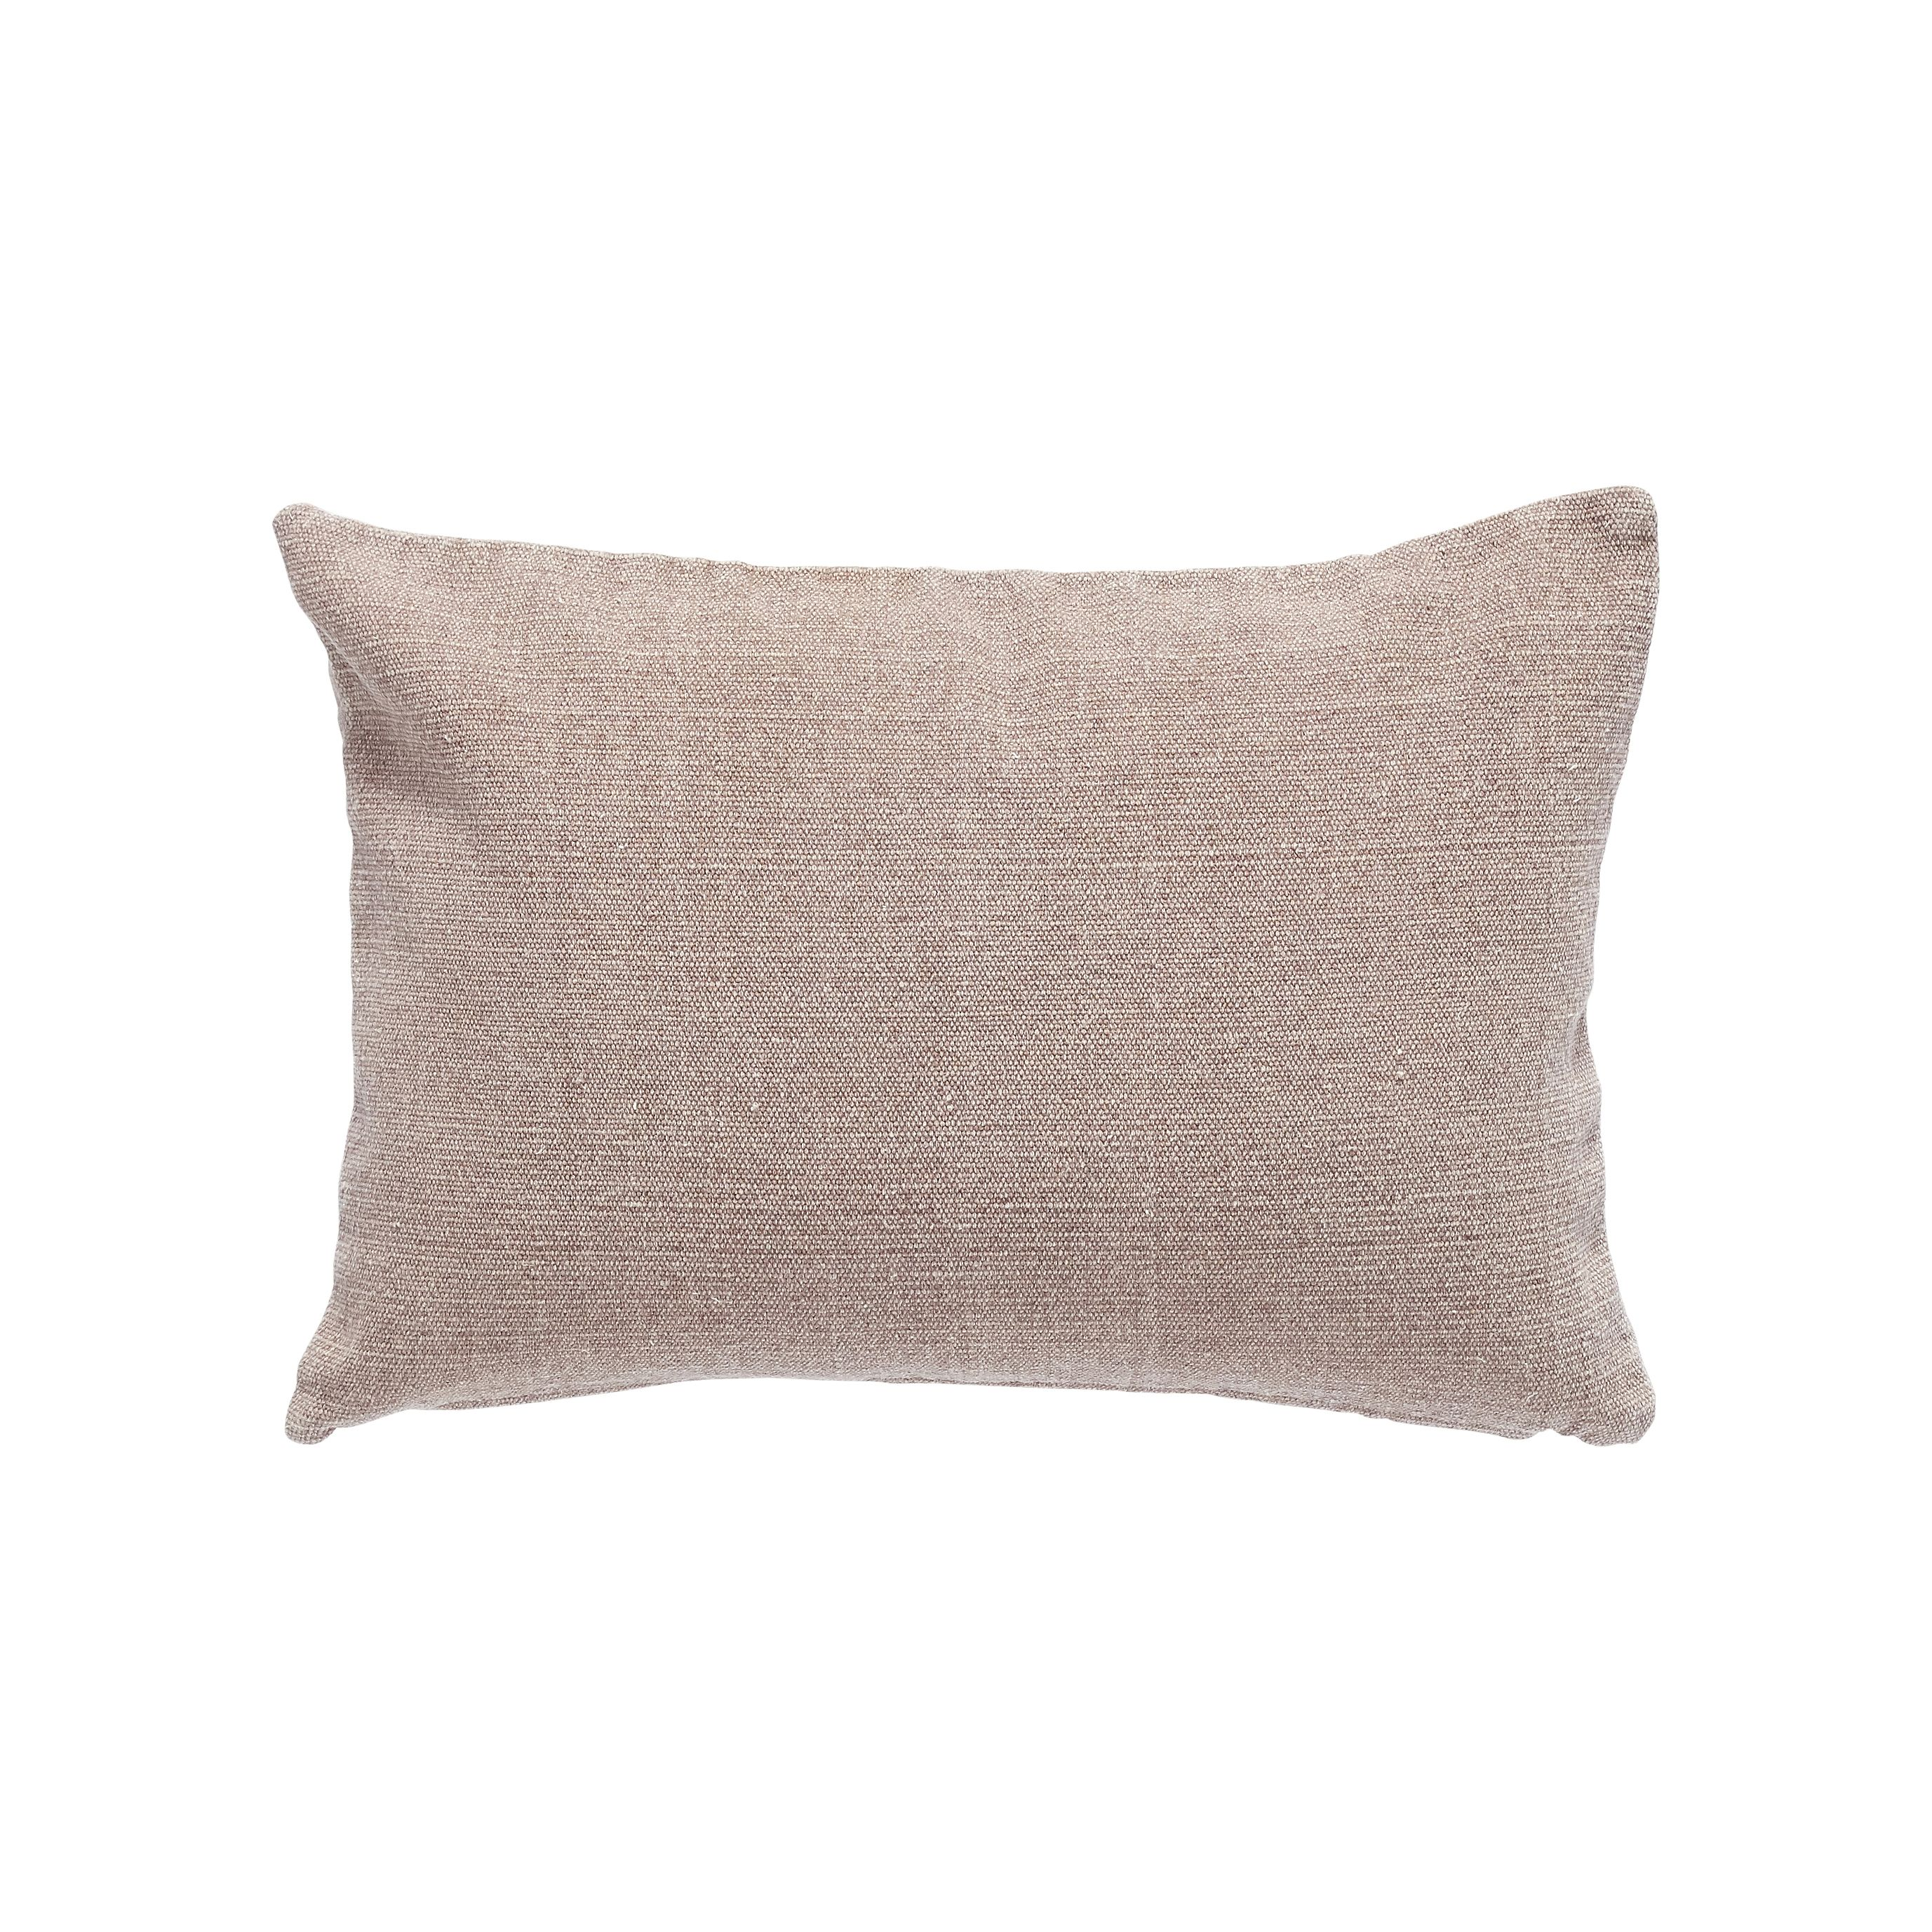 Purple cushion with stuffing. Product number: 500301 - Designed by Hübsch